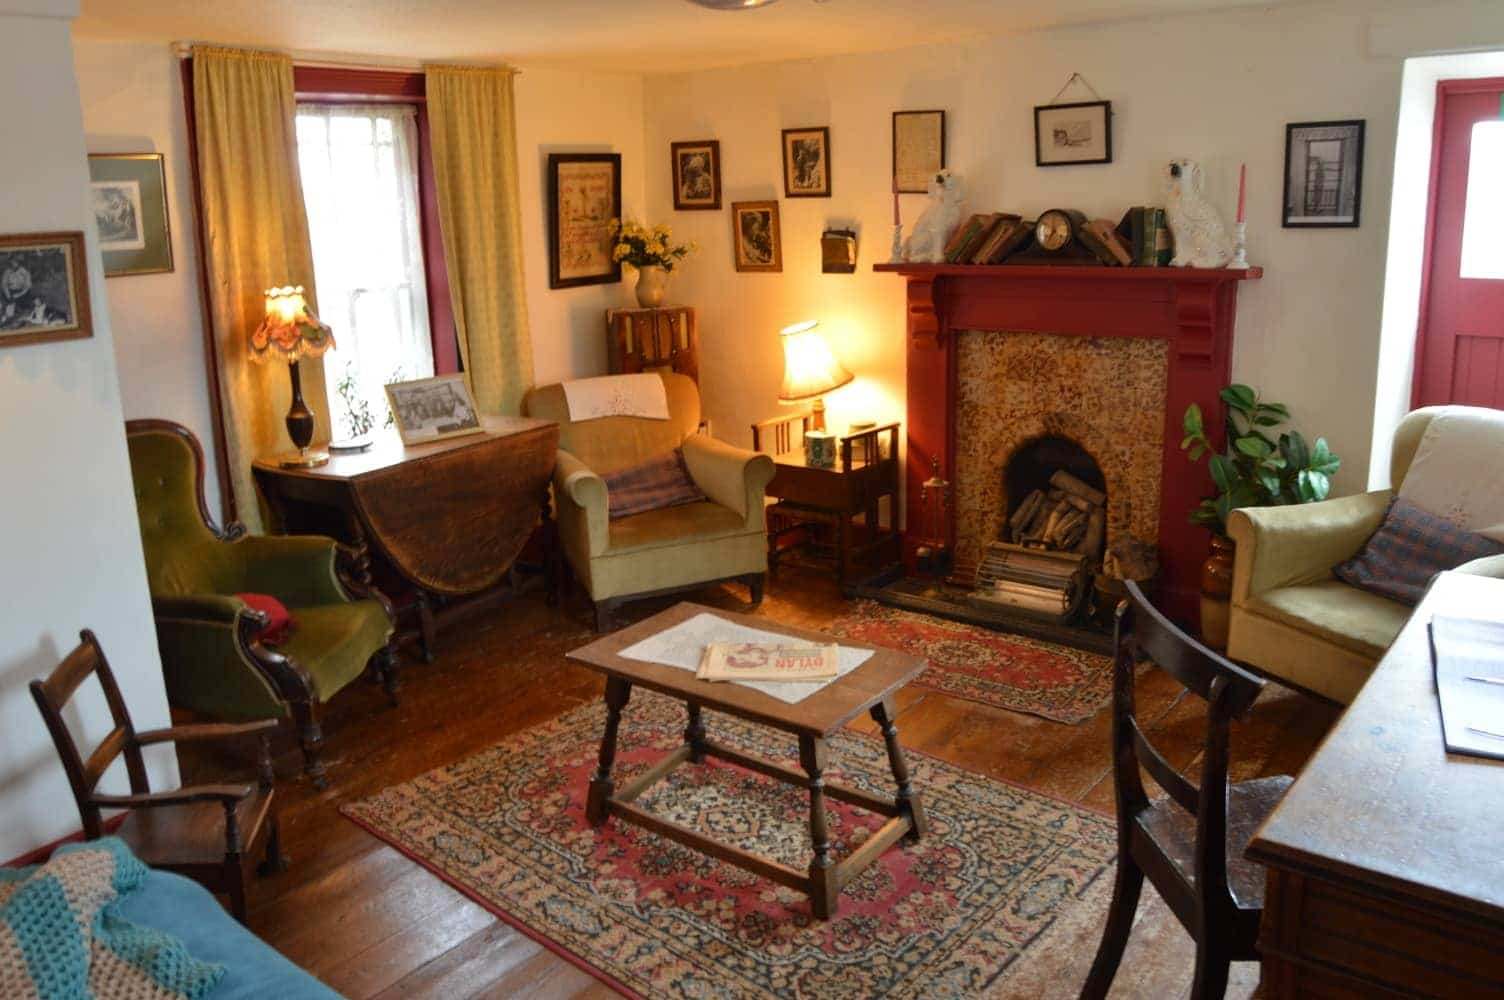 The Poets living room, exactly how he left it